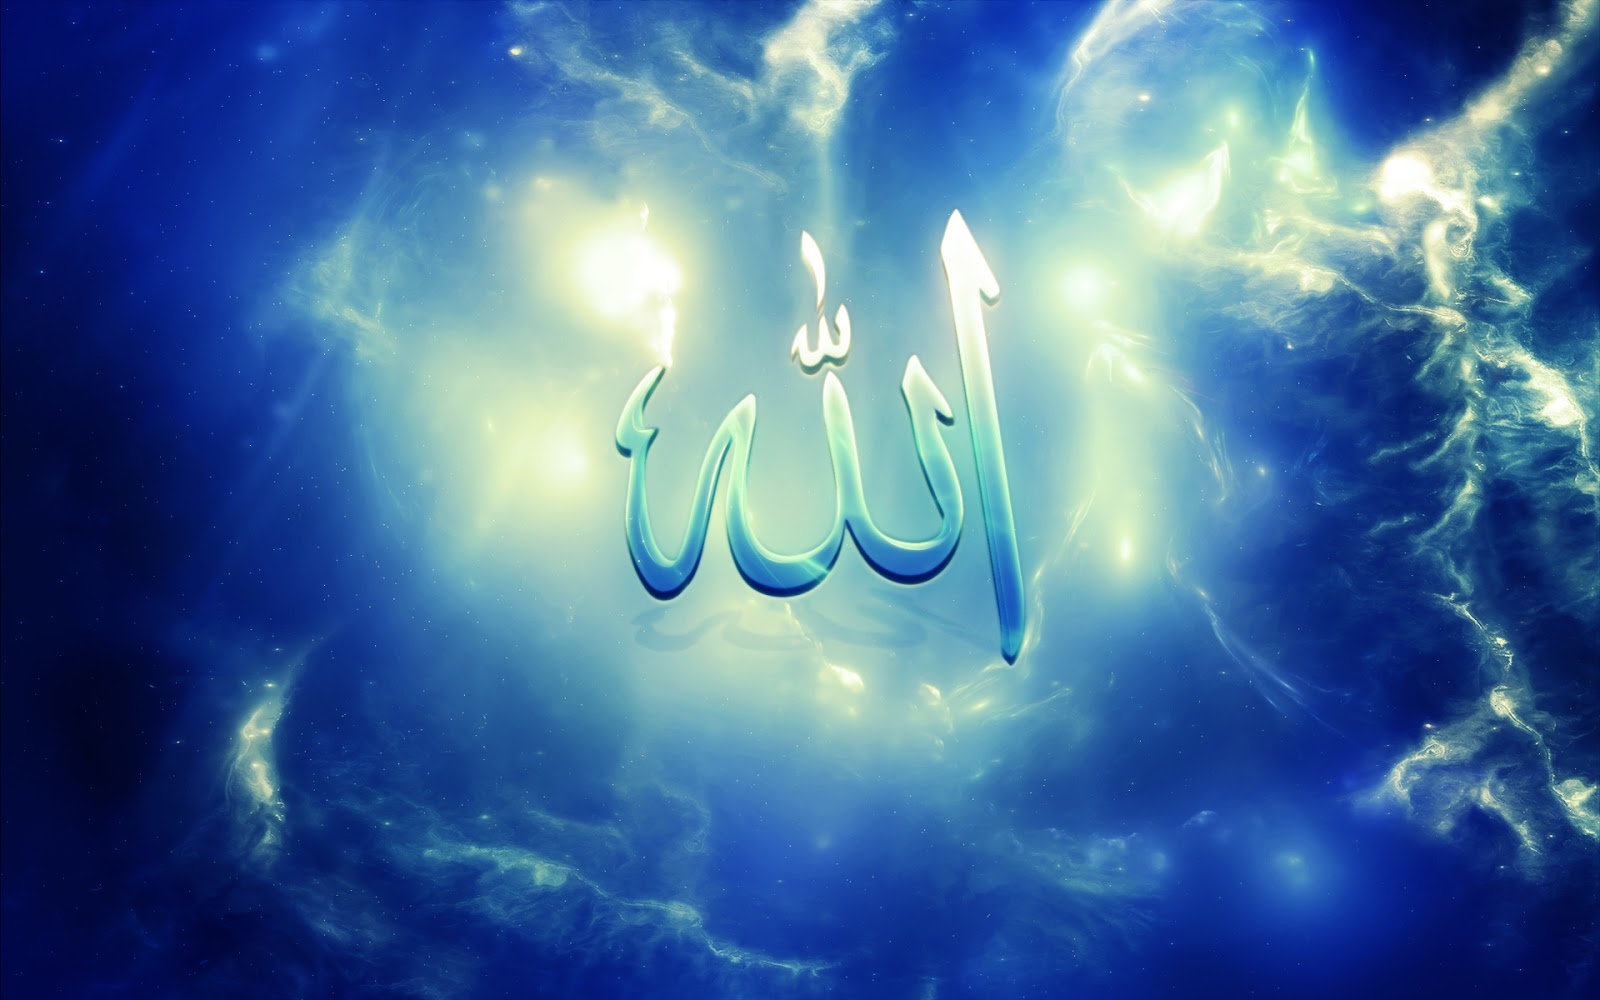 Love Wallpaper Allah : Download Free Allah Names HD Wallpapers.